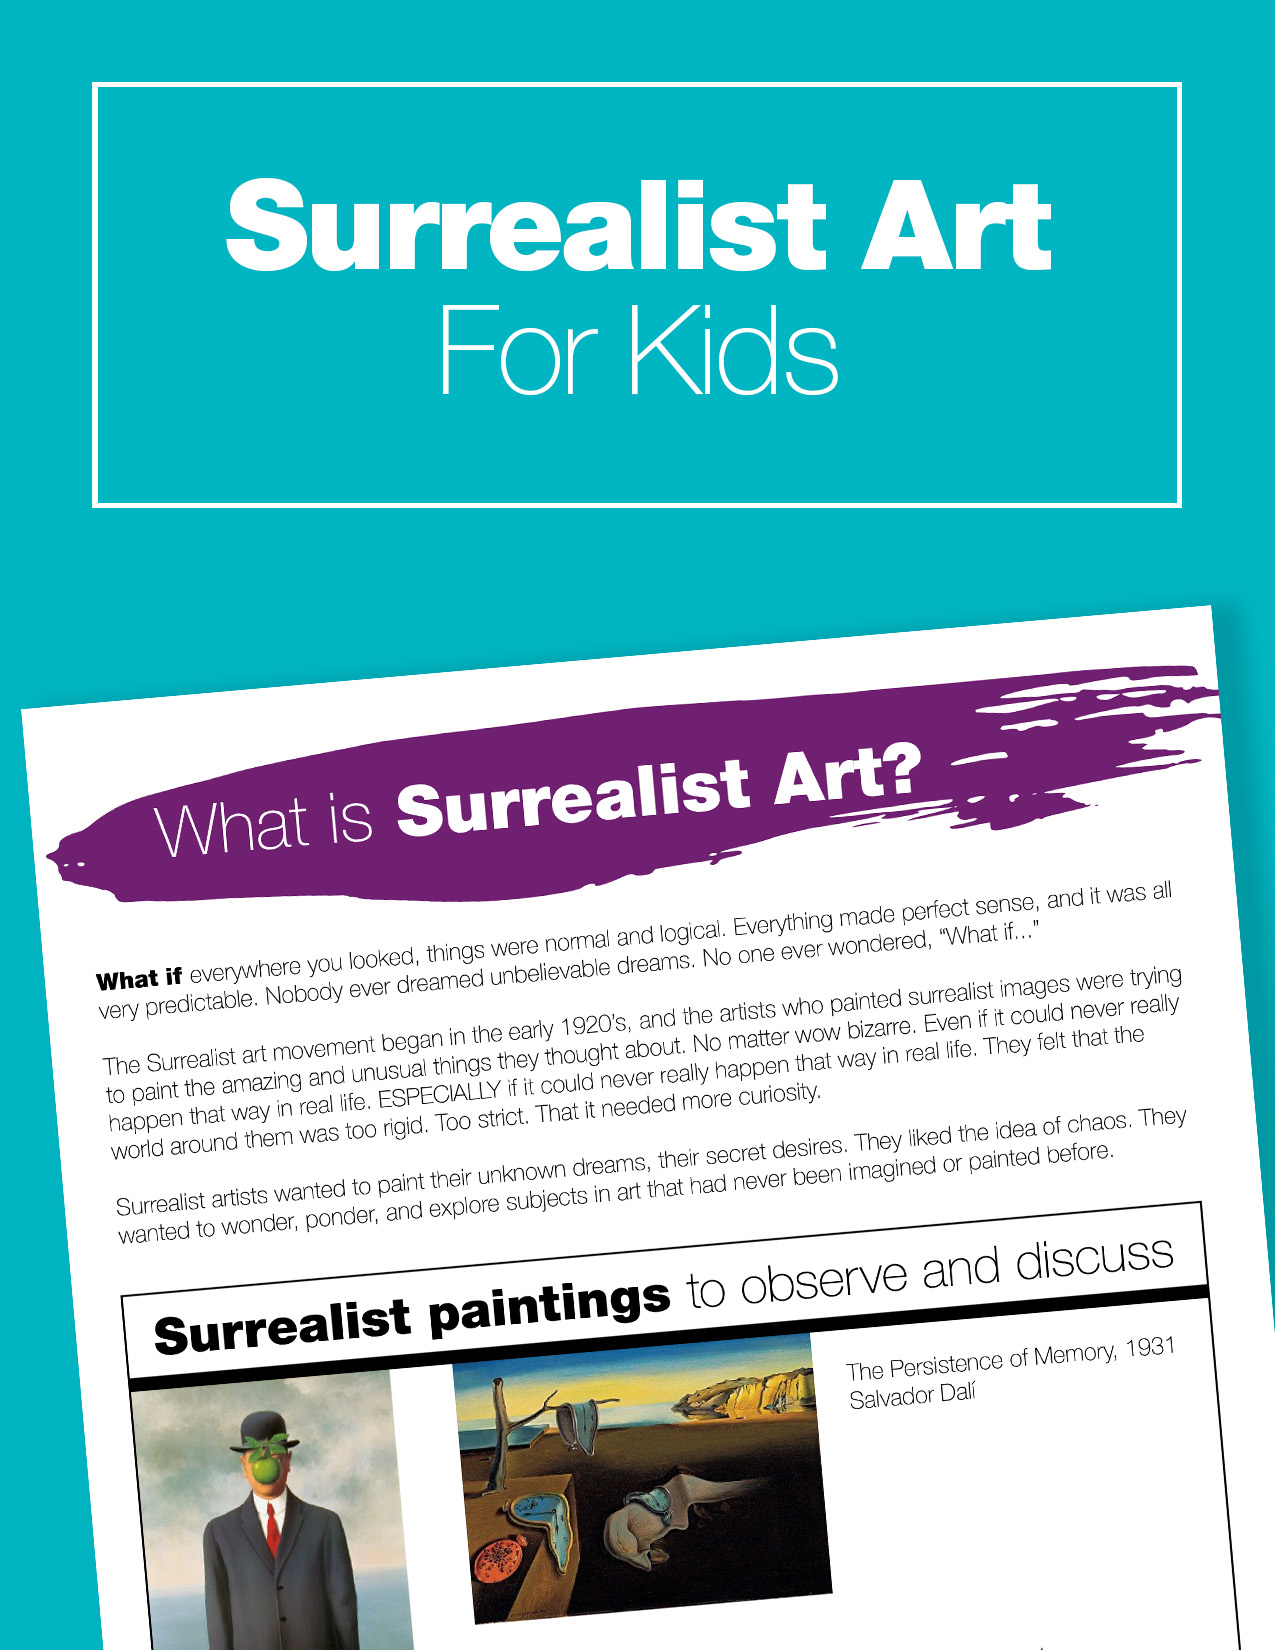 Free printable guide to surrealist art for kids. Plus, you'll get access to a great resource library full of fun art history materials. Art history for kids... it's never too early to introduce the classics.